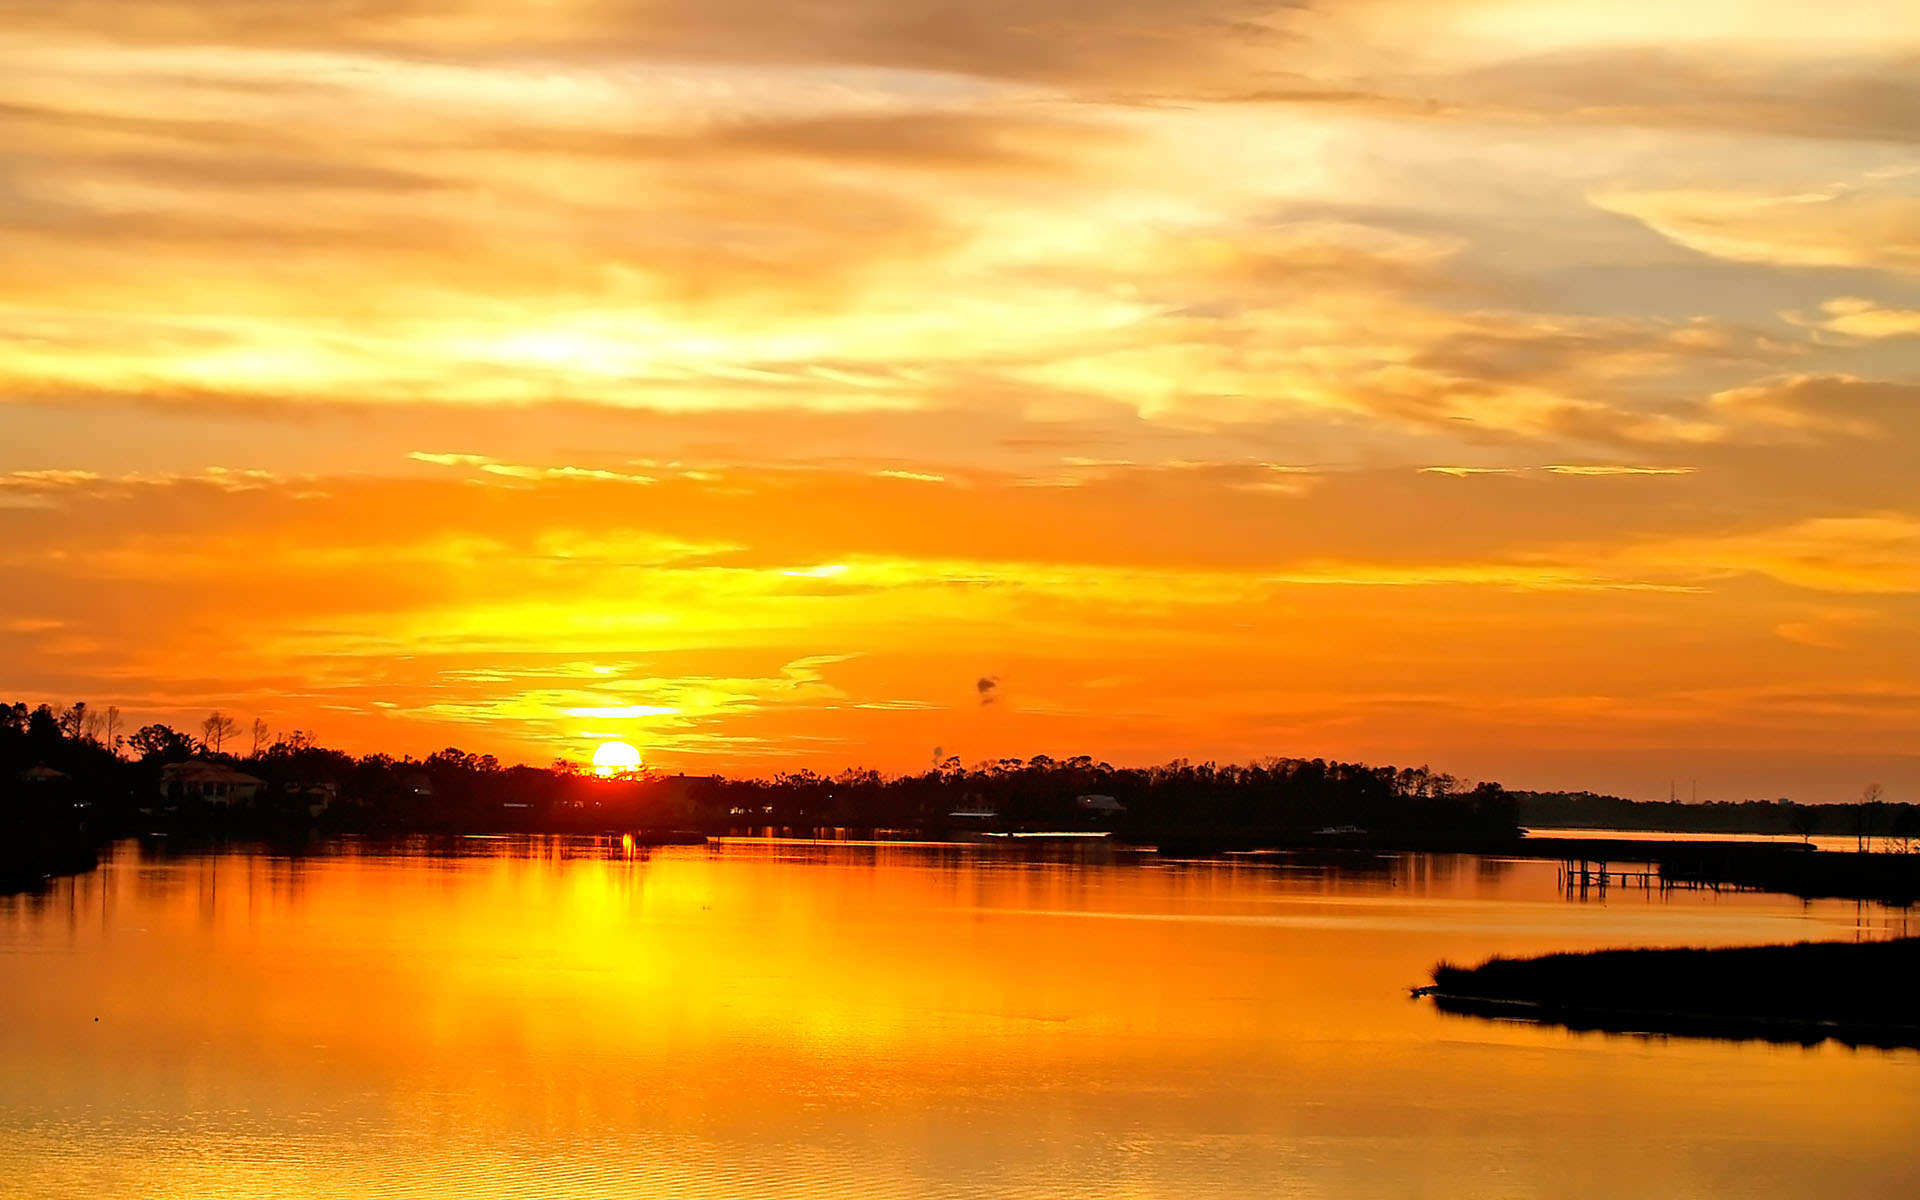 Sunset Background wallpaper   182174 1920x1200